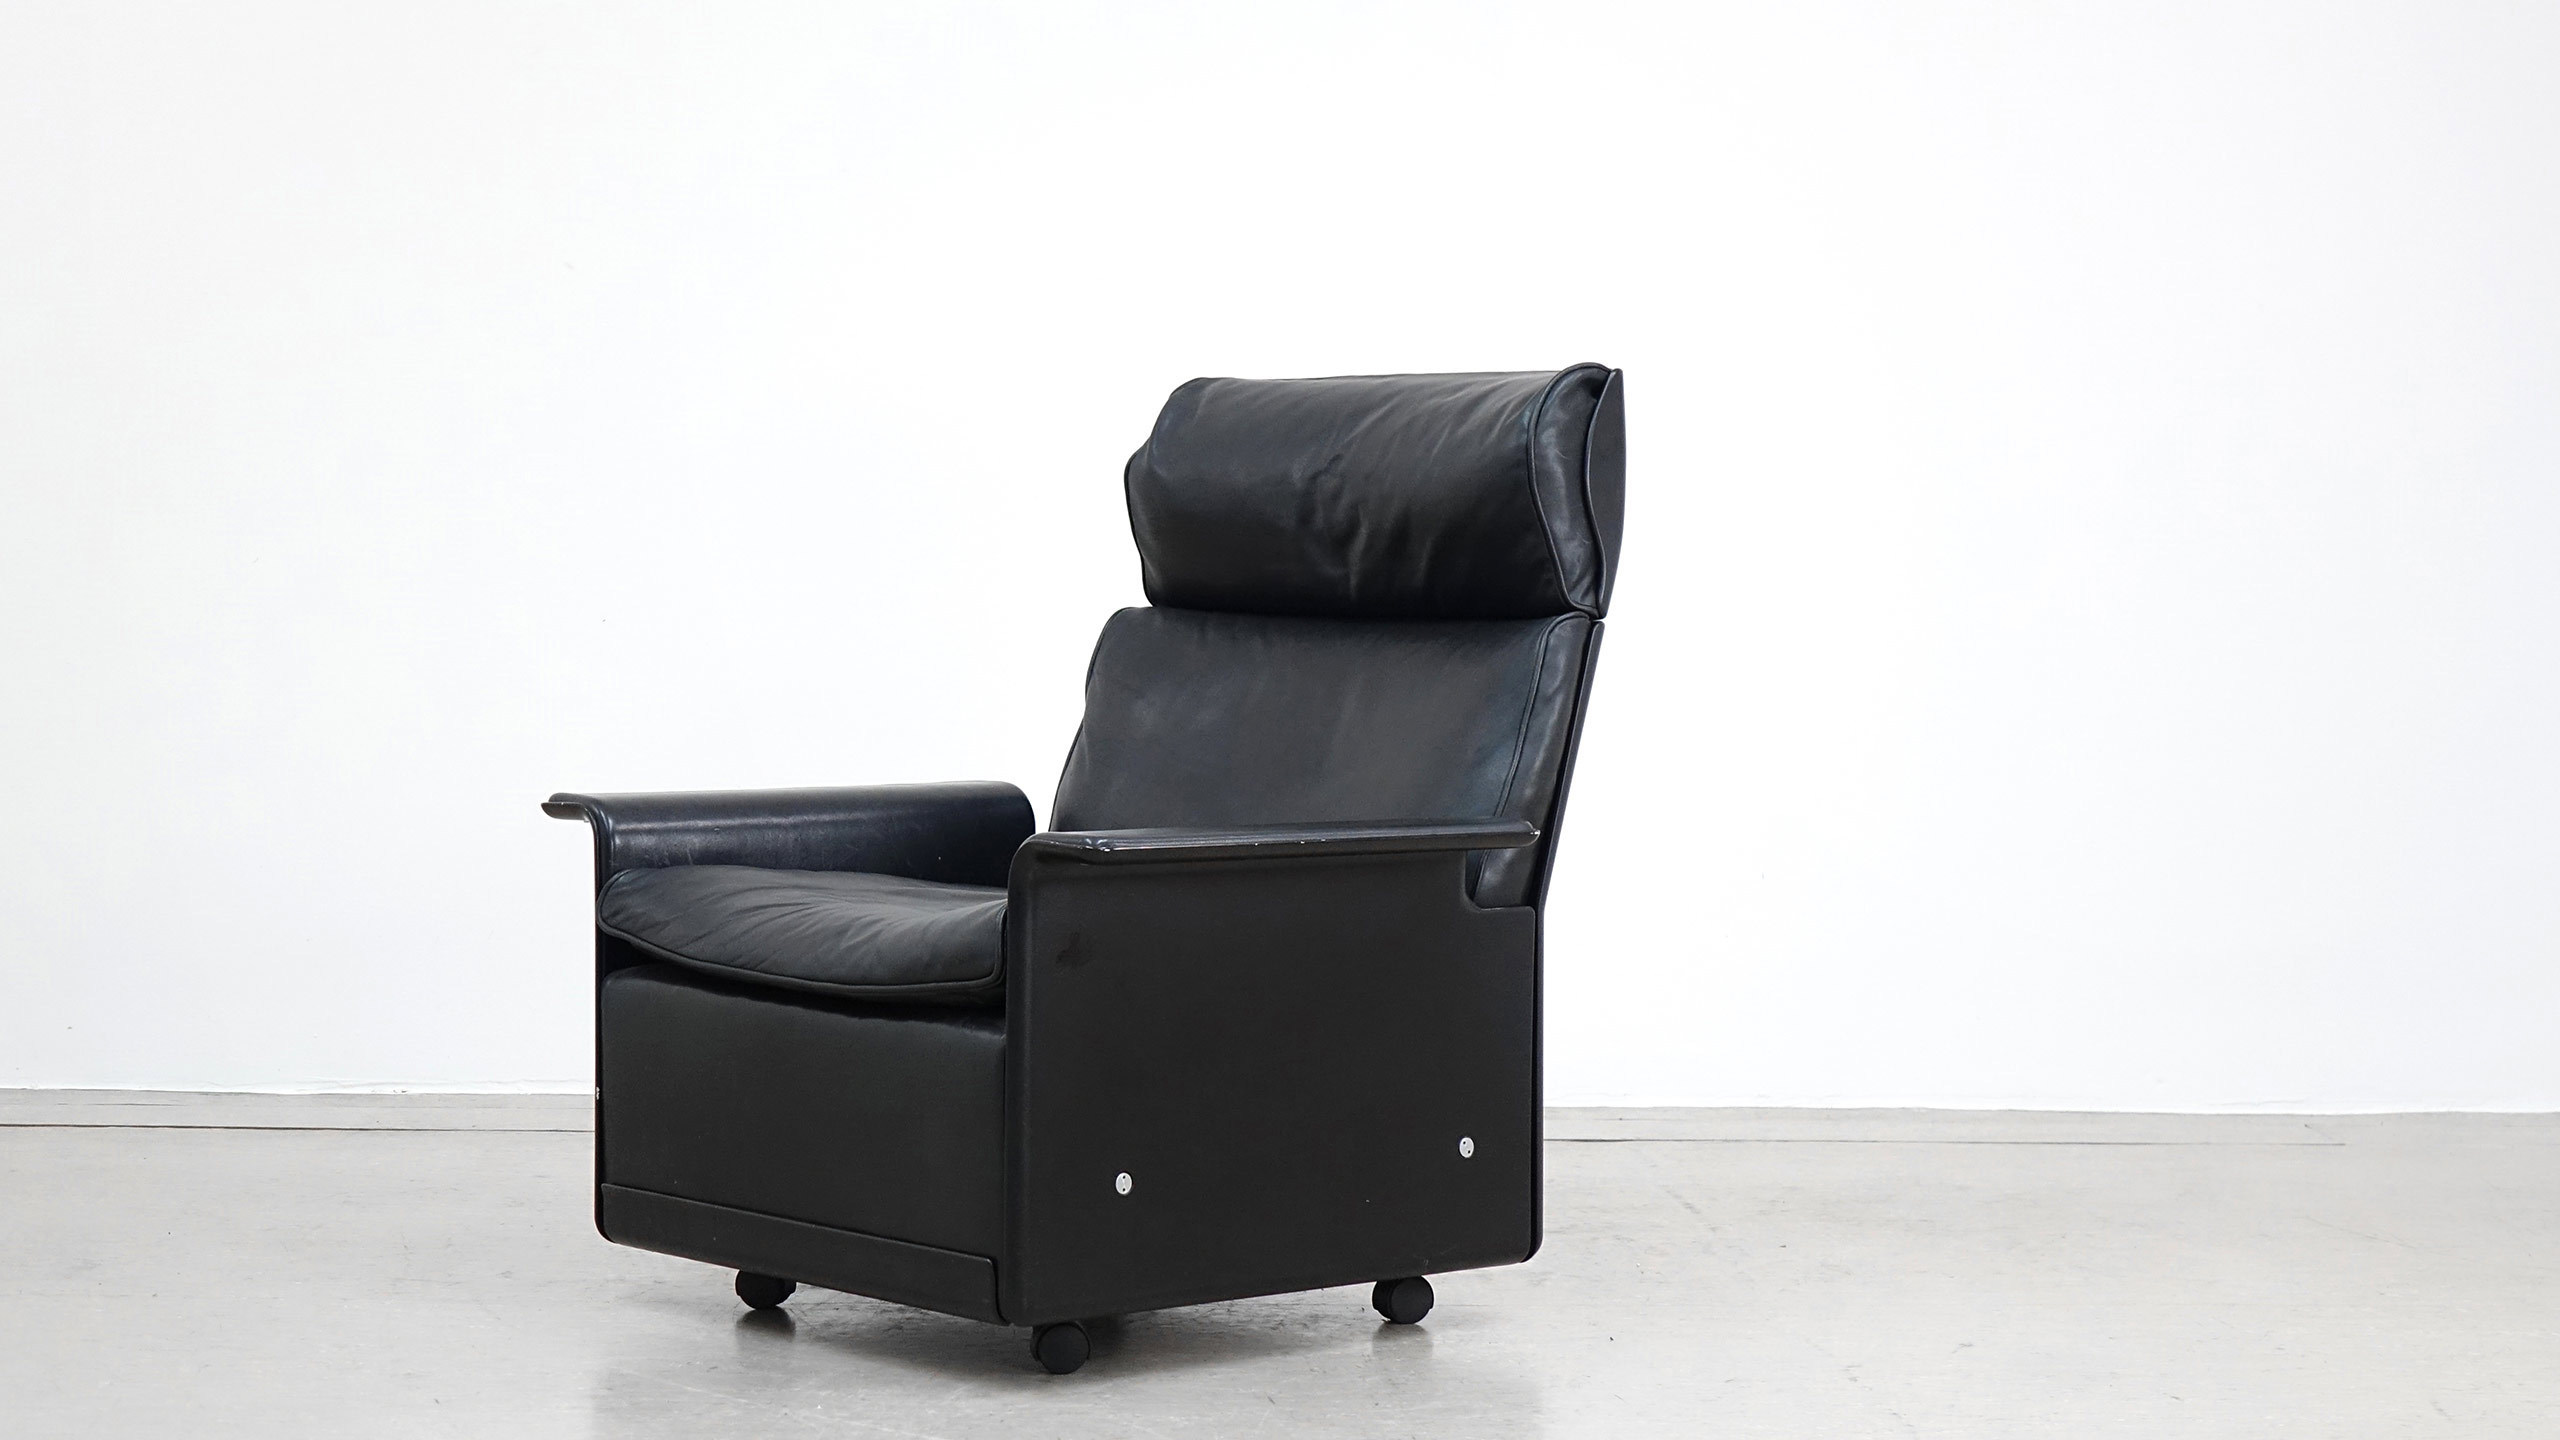 Chair Sessel Dieter Rams Lounge Chair Rz 620 By Vitsoe